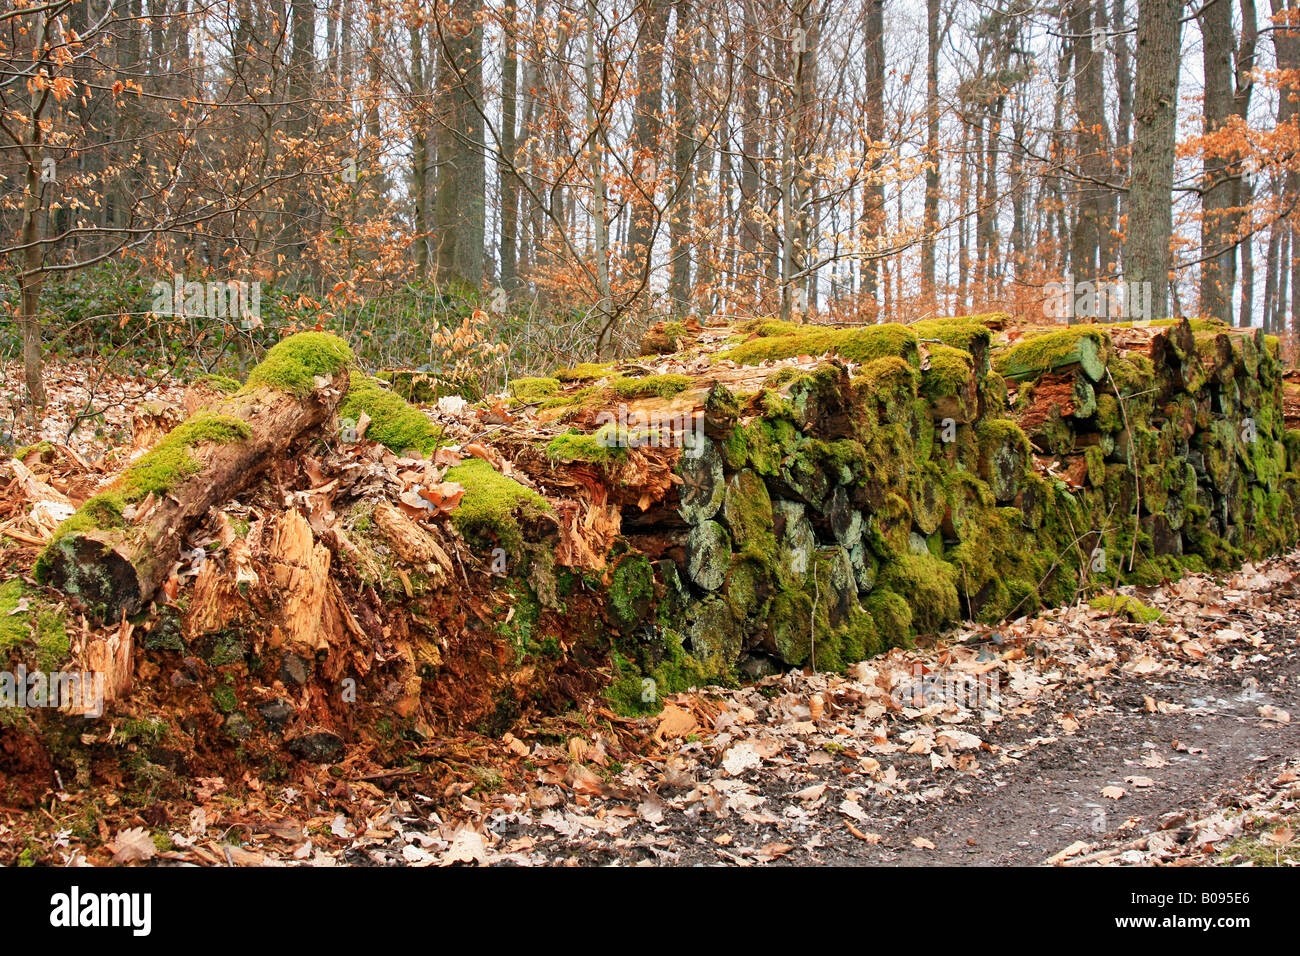 Moss covered logpile rotting beside a forest path, waste of natural resources - Stock Image